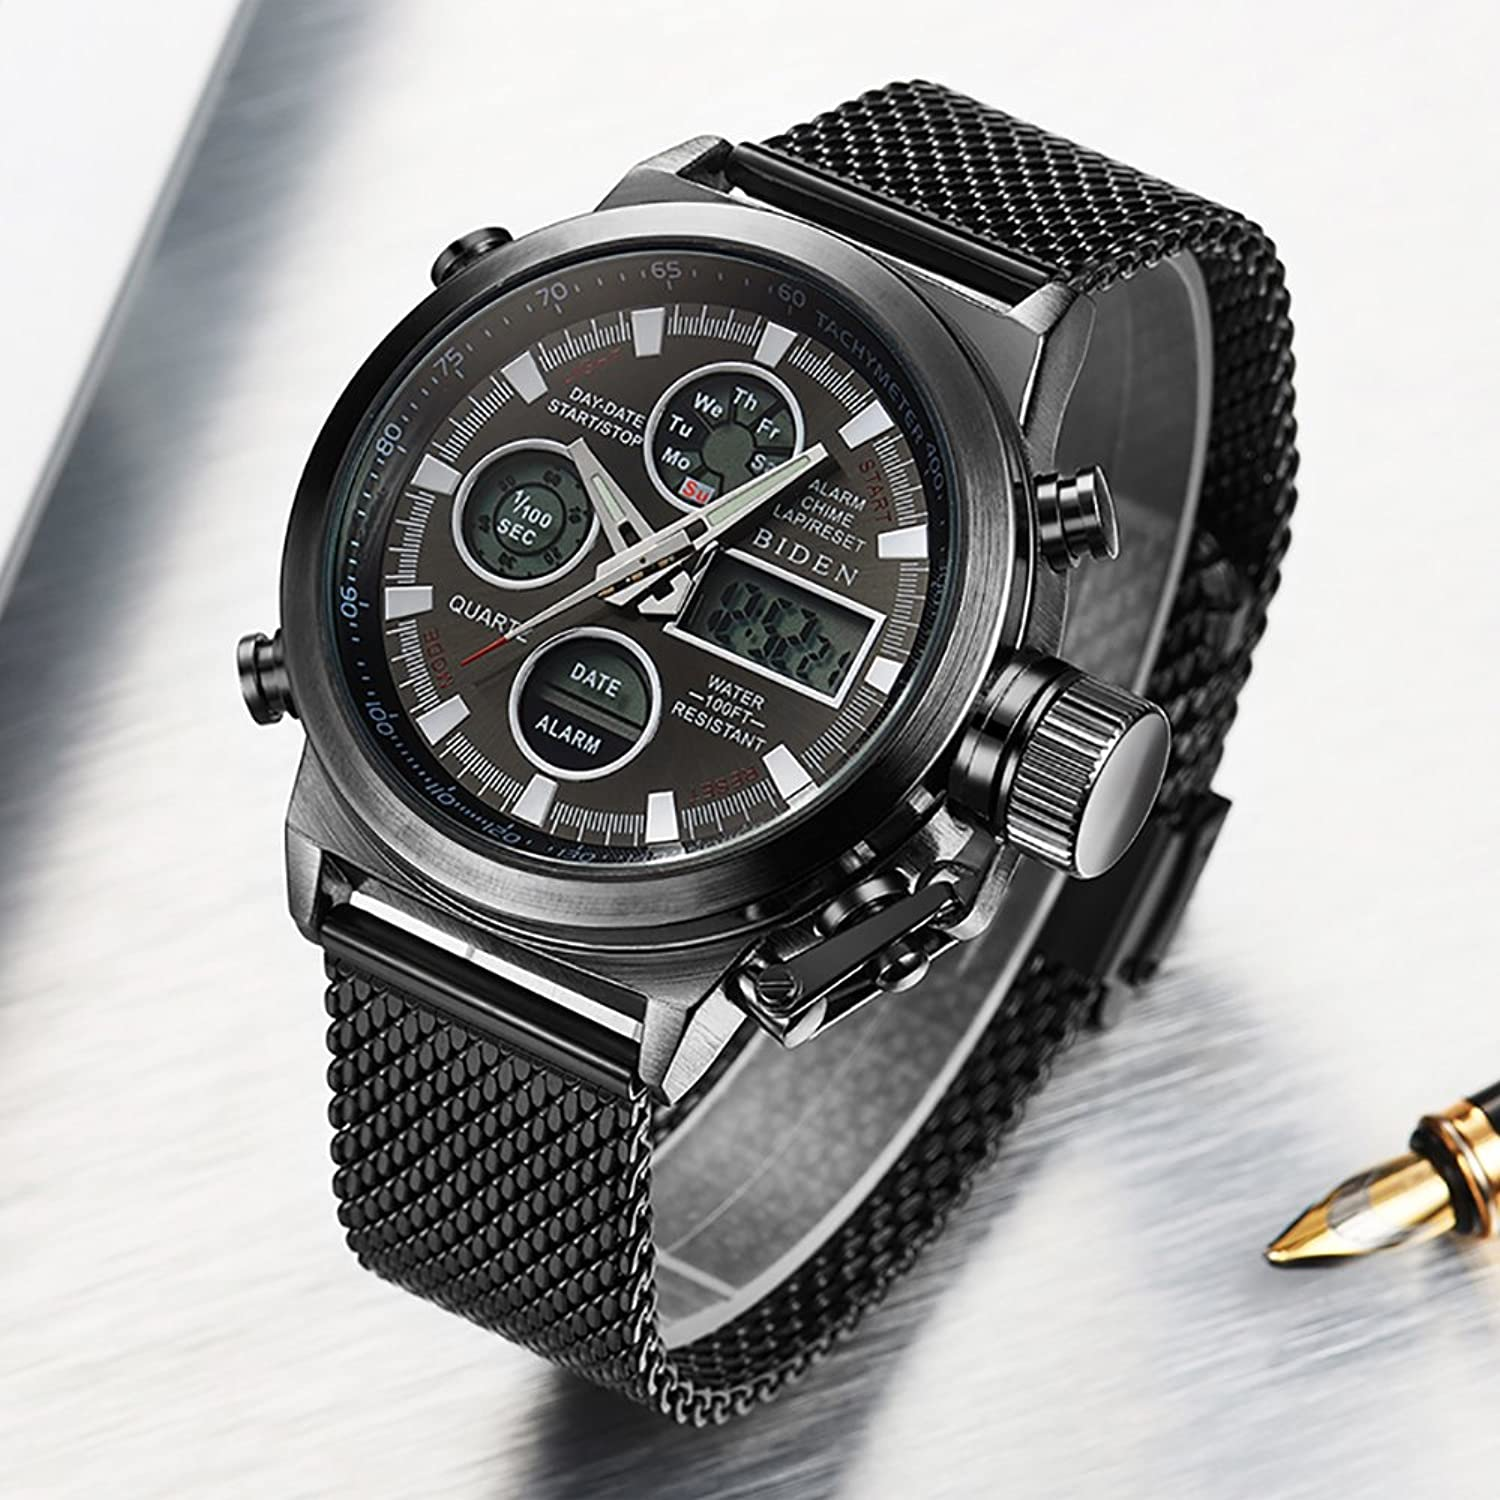 Amazon.com: BIDEN Brand New Arrival LED Digital Mesh Stainless Strap Quartz Sport Military Watch (Black): Watches